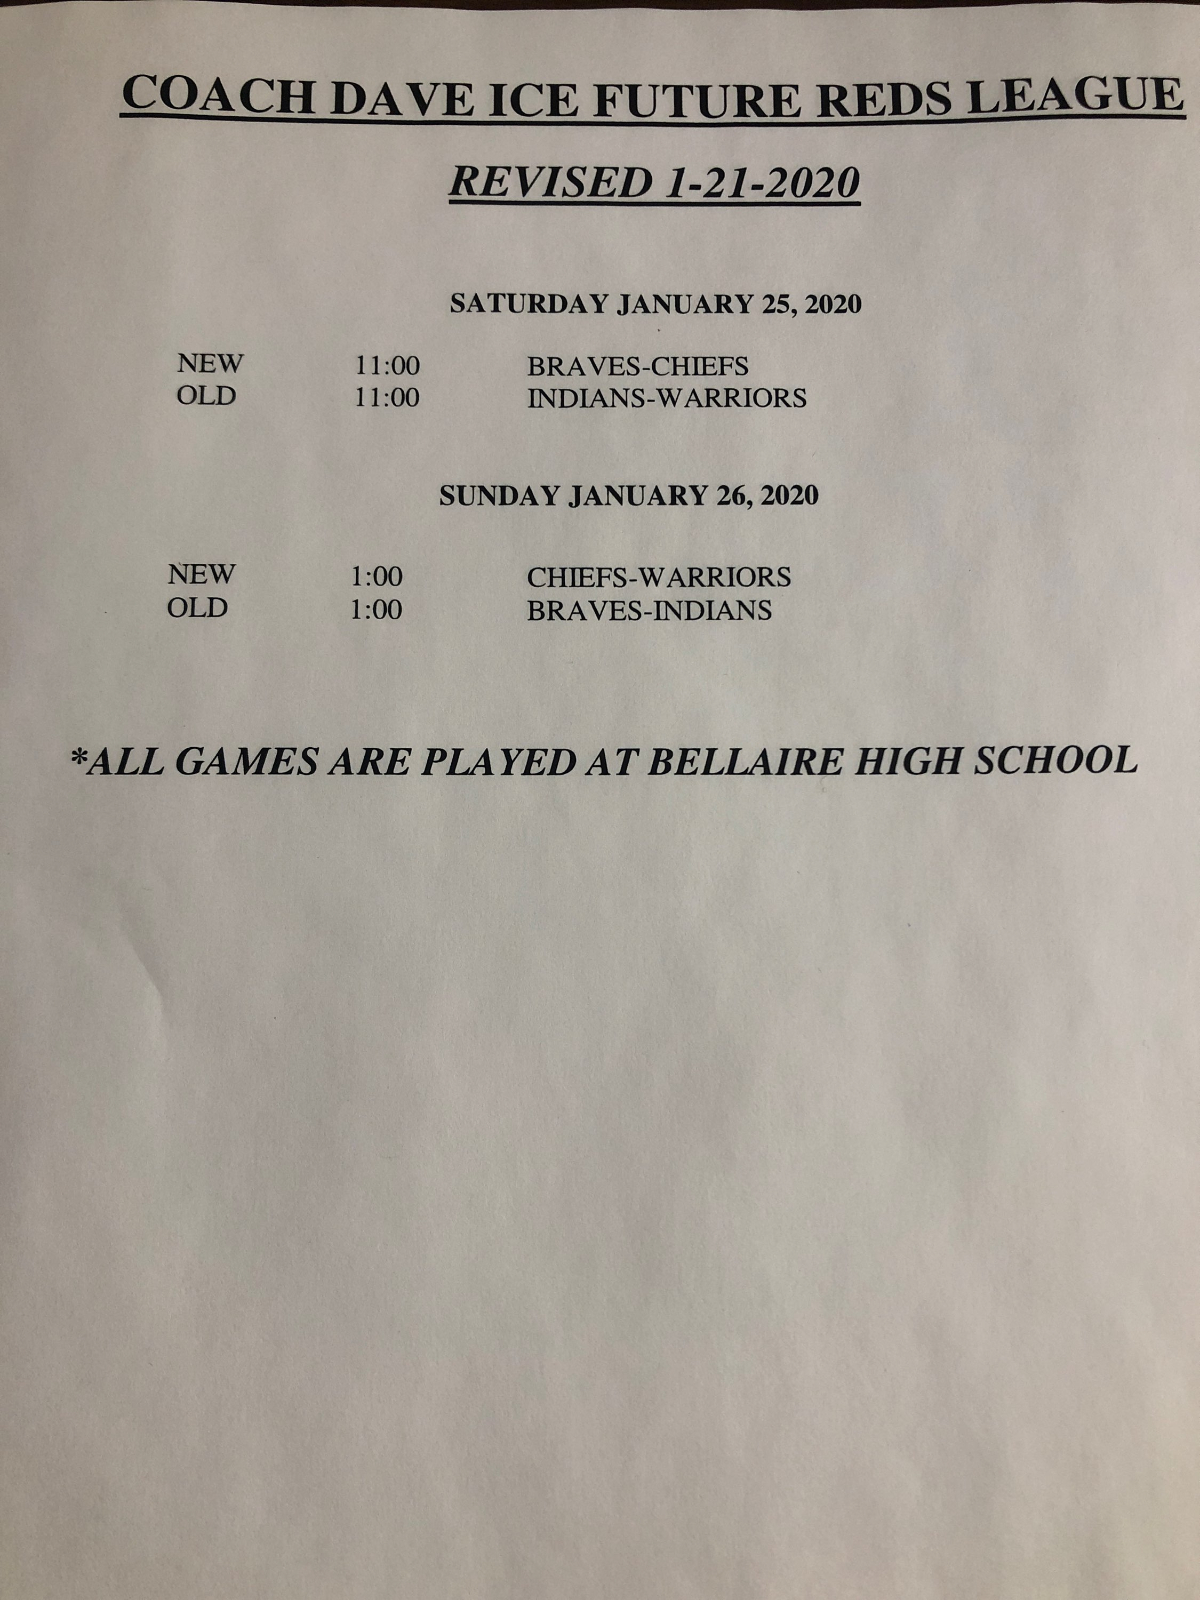 5th-6th grade league's final weekend with updated schedule